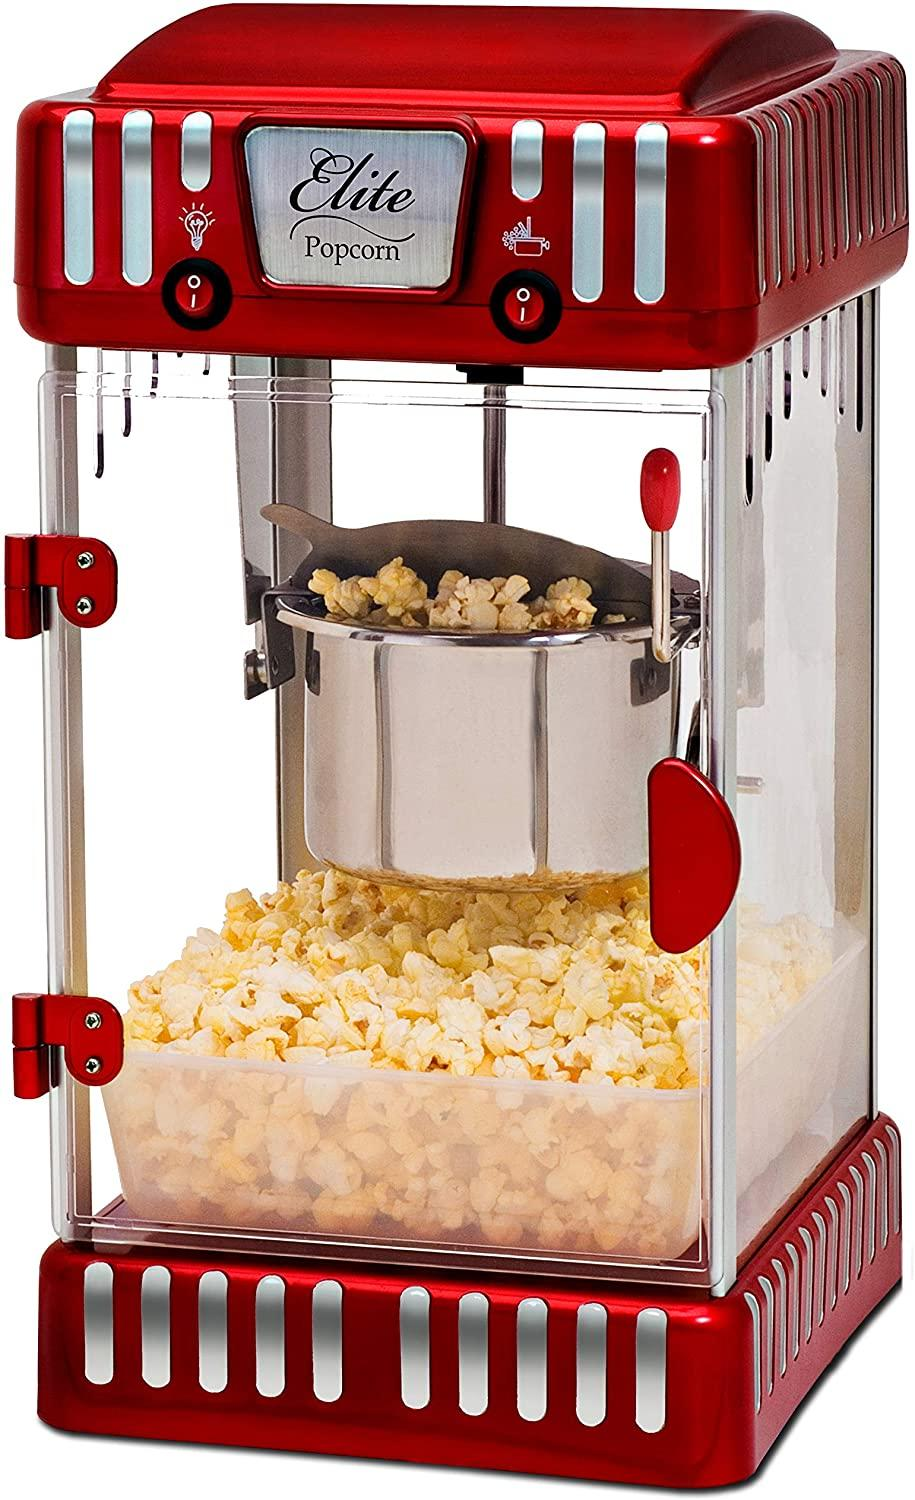 Maxi-Matic Retro Popcorn Machine (Photo via Amazon)